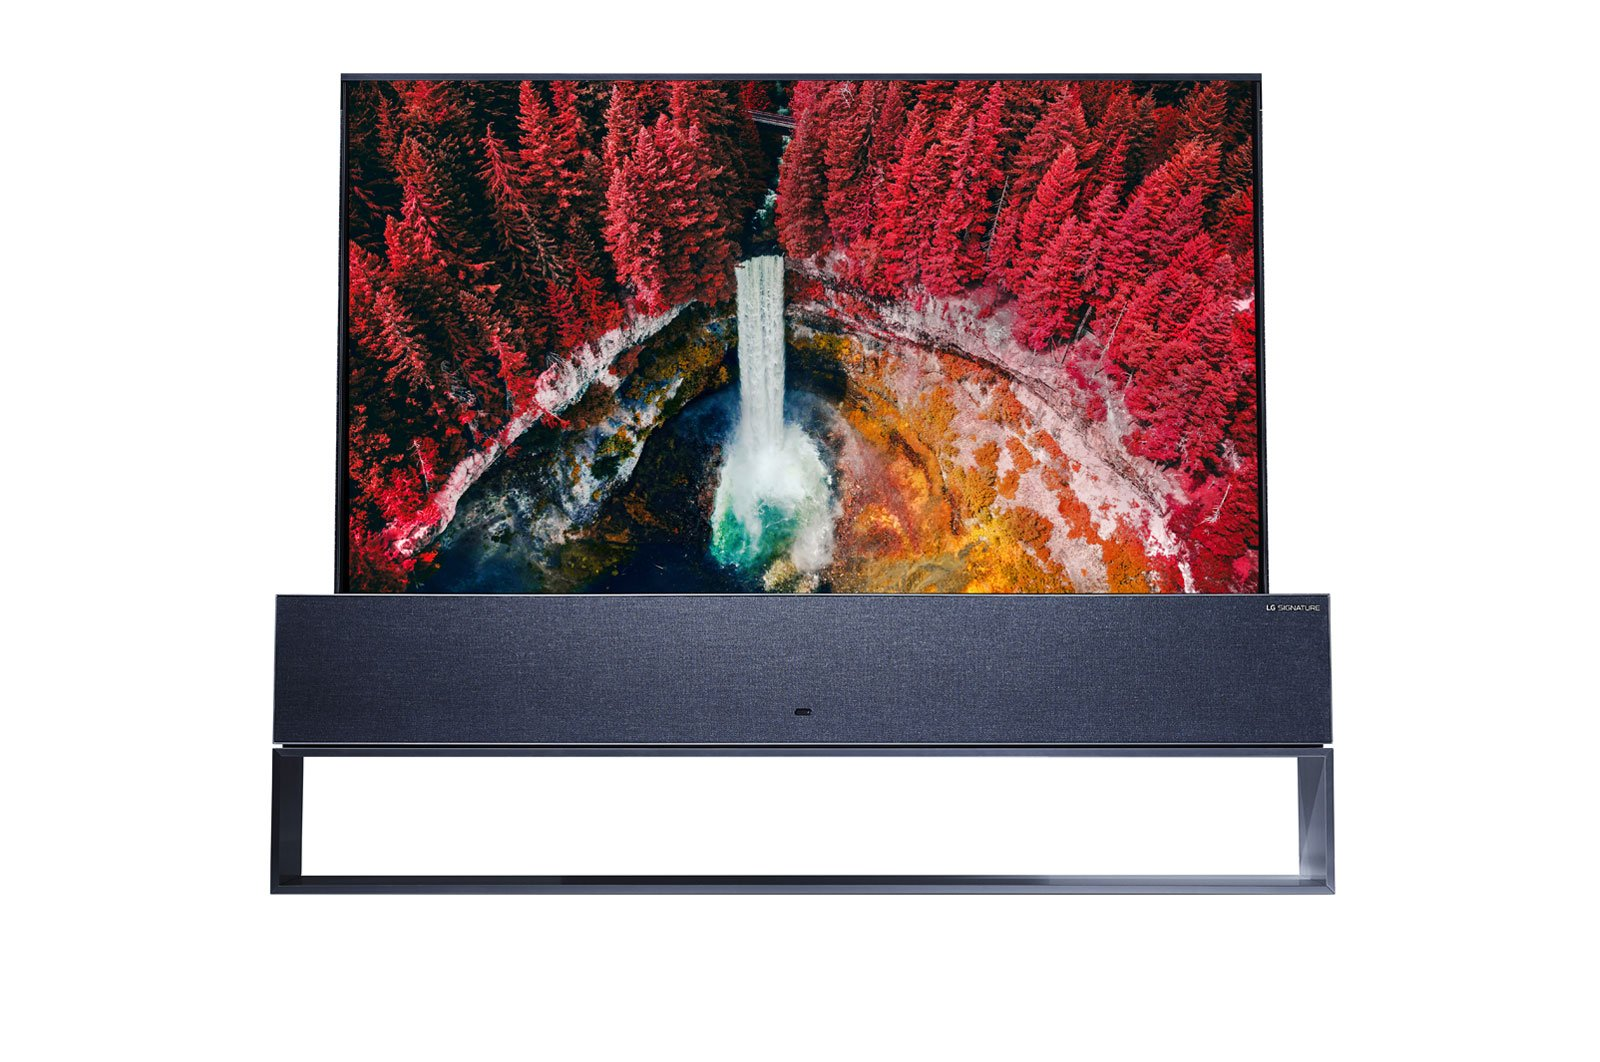 "LG Signature OLED TV RX – 65"" 4K HDR Smart TV"